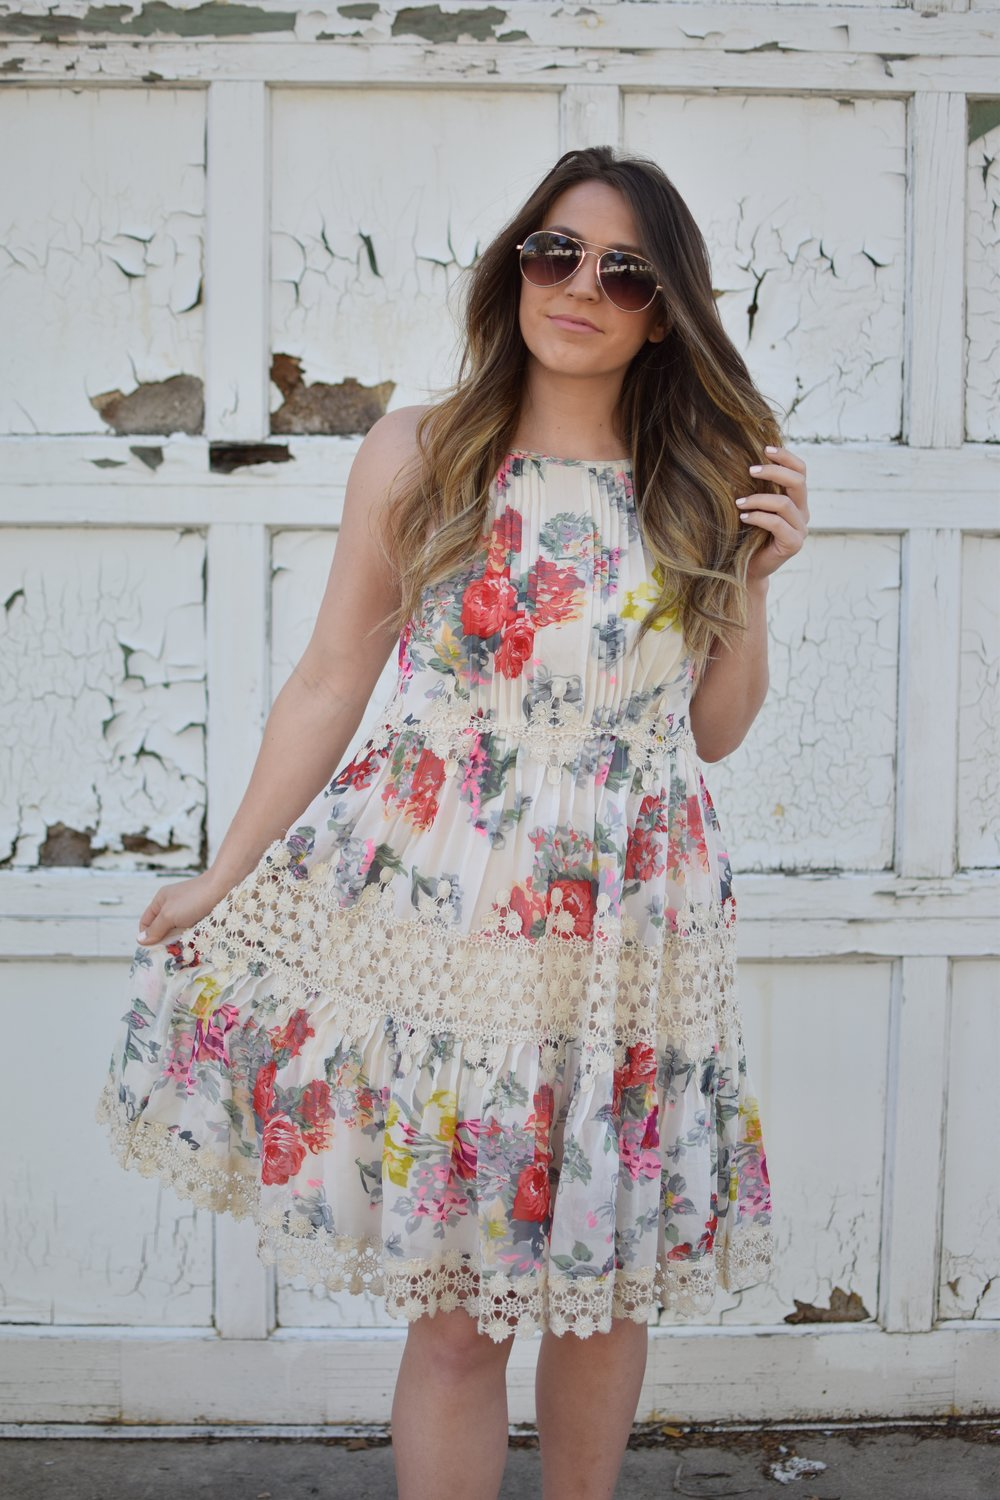 anthropology floral & lace dress / spring & summer outfit idea / guest of wedding dress idea